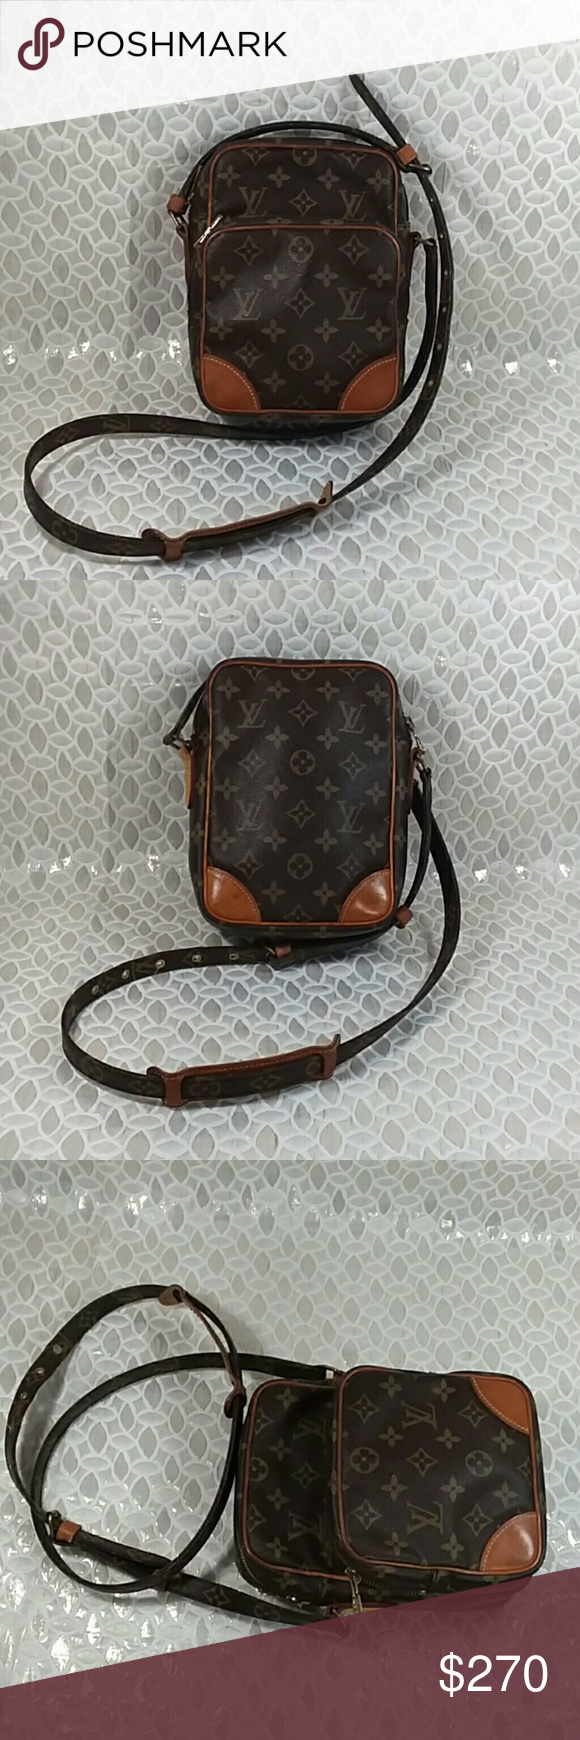 Auth Louis Vuitton Monogram Amazon Monogram Bag Louis Vuitton